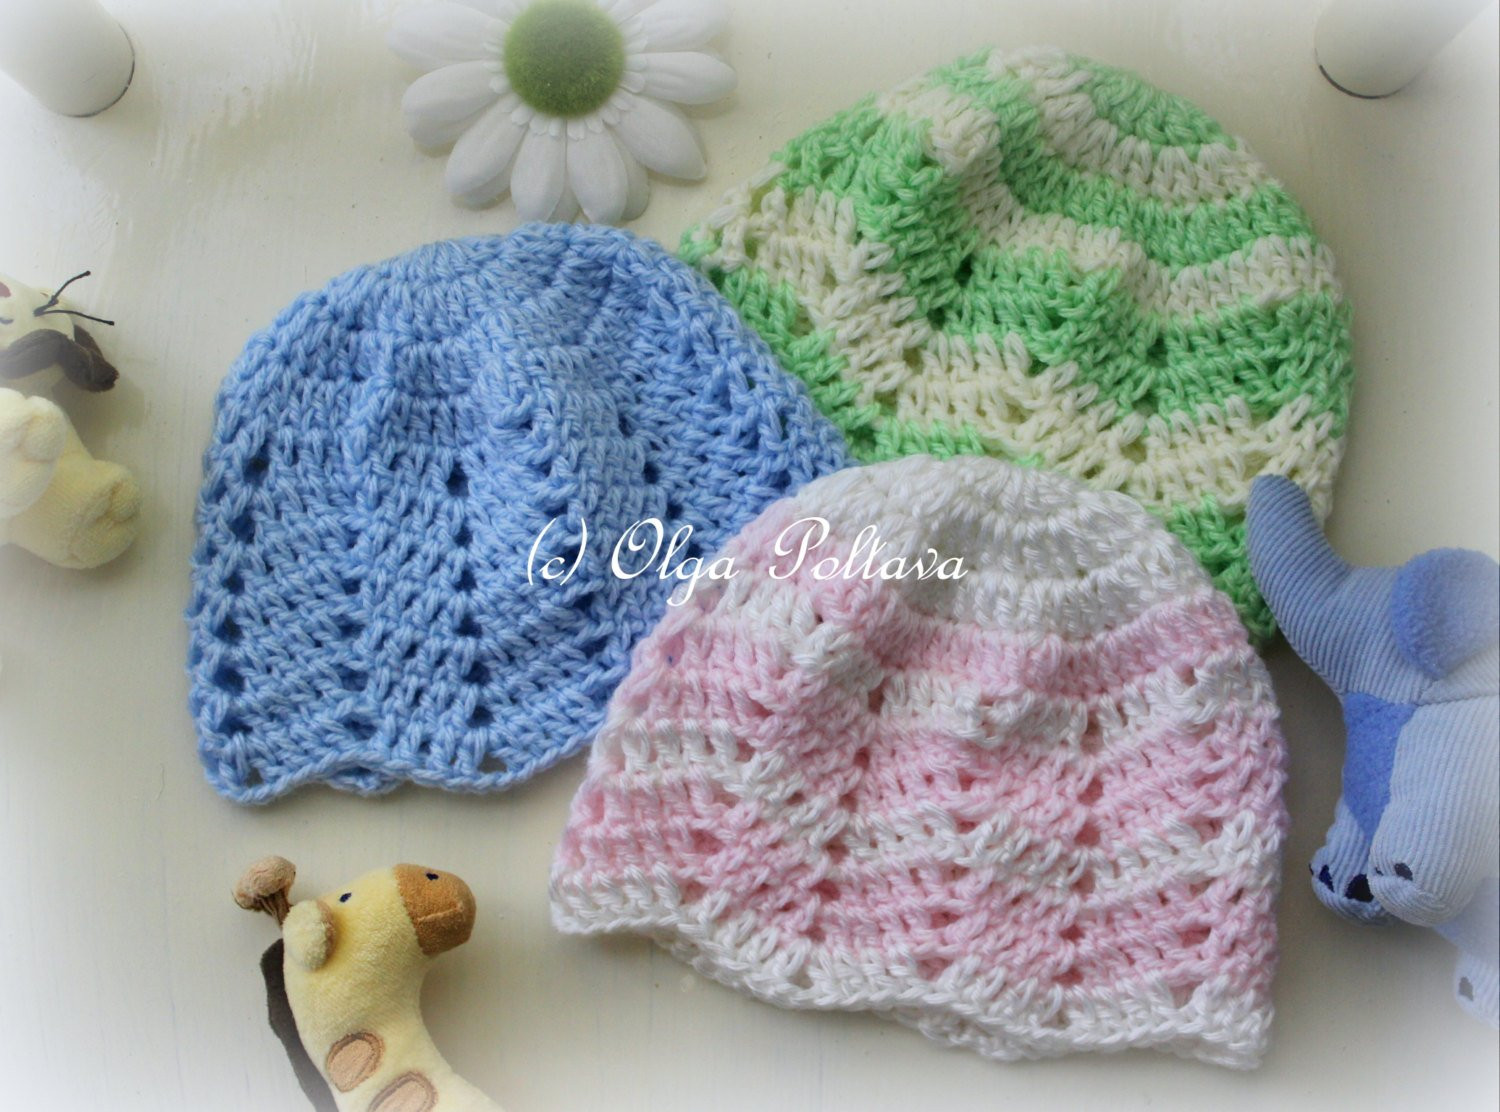 Best Of Ripple Baby Beanie Crochet Pattern Baby Girl and Baby Boy Crochet toddler Beanie Of Delightful 40 Ideas Crochet toddler Beanie